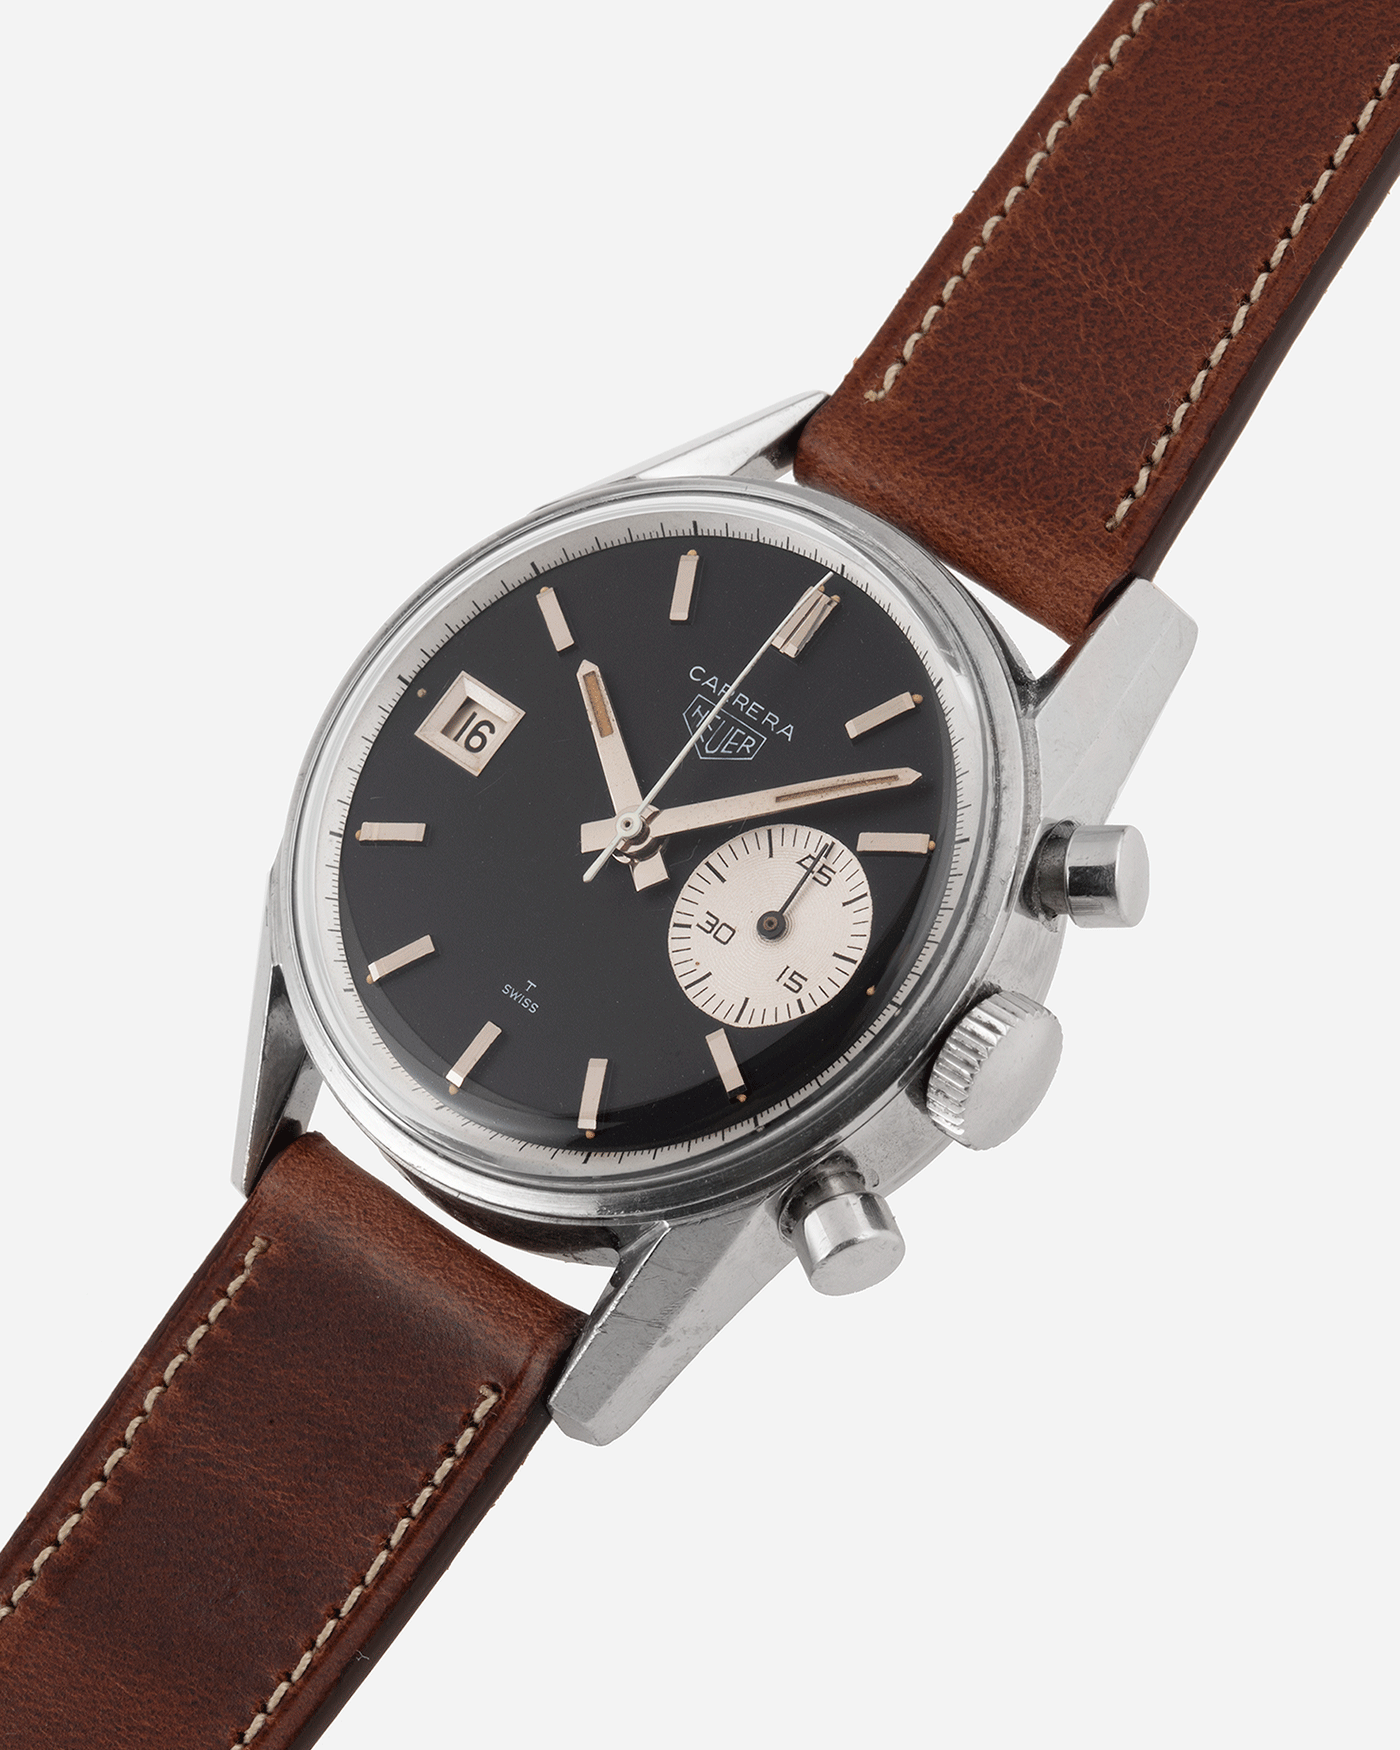 Brand: Heuer Year: 1960's Model: Carrera Reference Number: Dato 45 Ref. 3147N Serial Number: 127655 Material: Stainless Steel Movement: Landeron 189 Case Diameter: 35mm Lug Width: 18mm Bracelet/Strap: Nostime Tobacco Horween Shell Cordovan